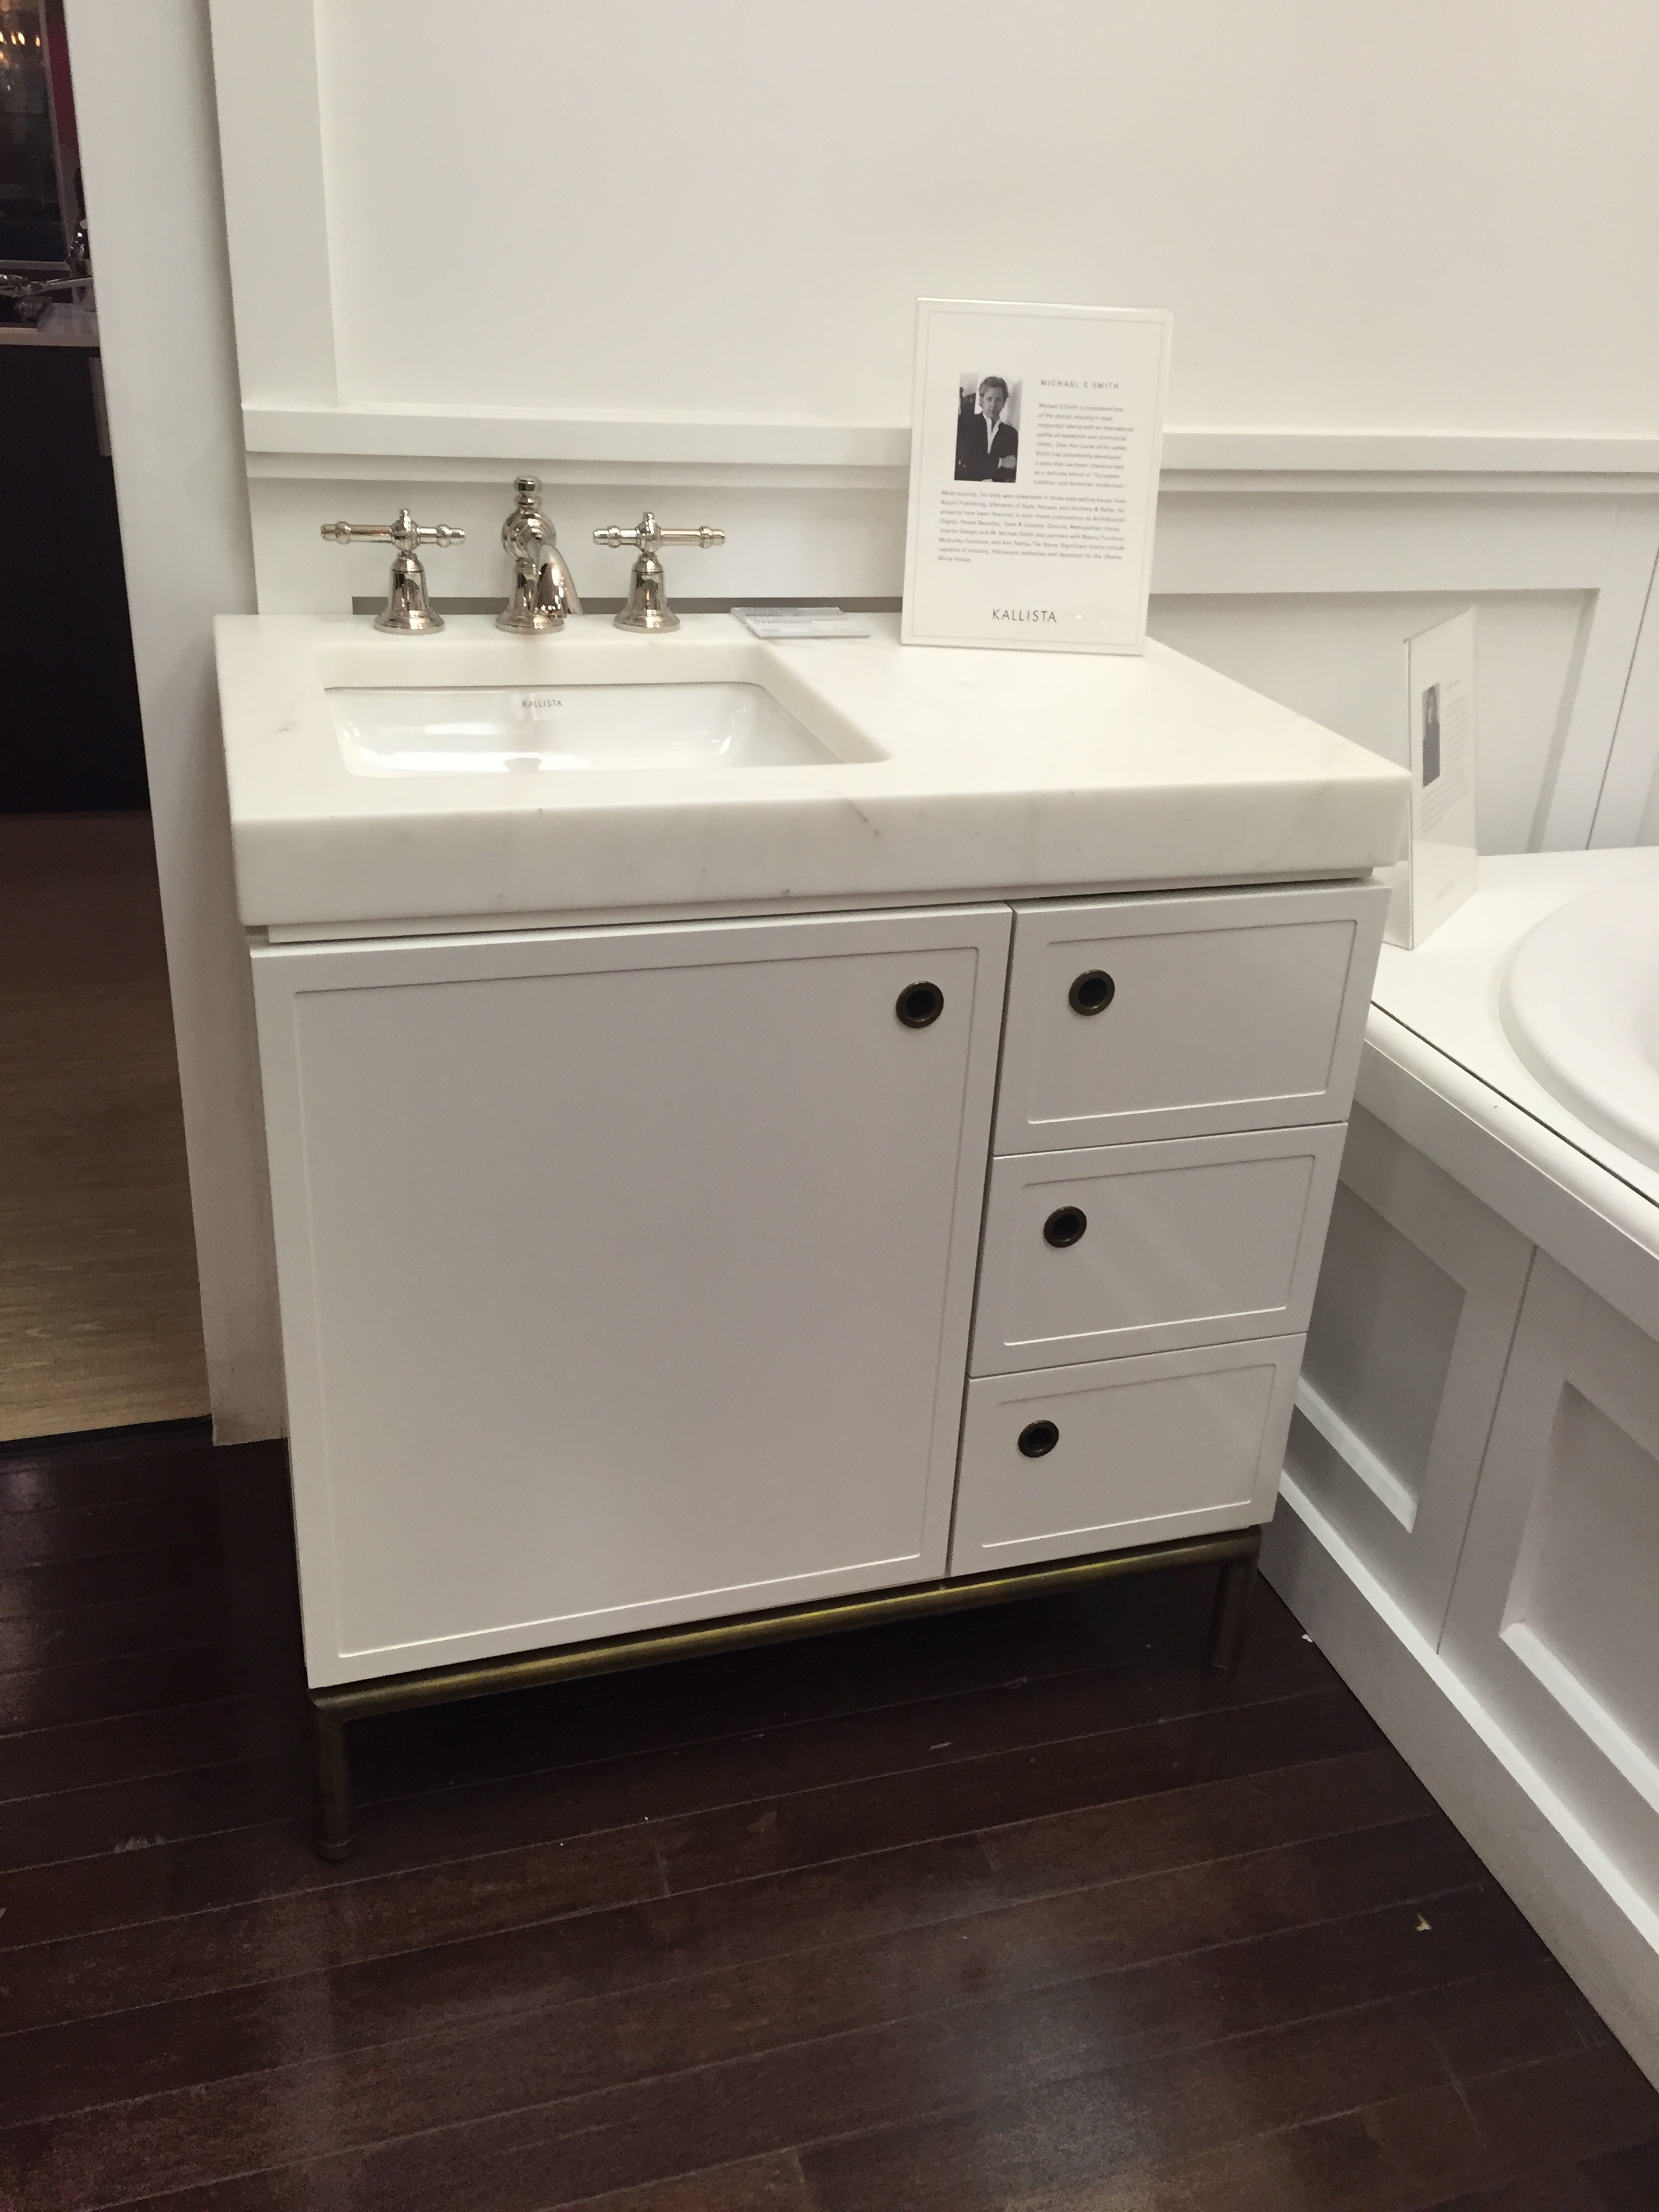 I have admired this Kalista vanity for years. And who won't want that slab of marble?